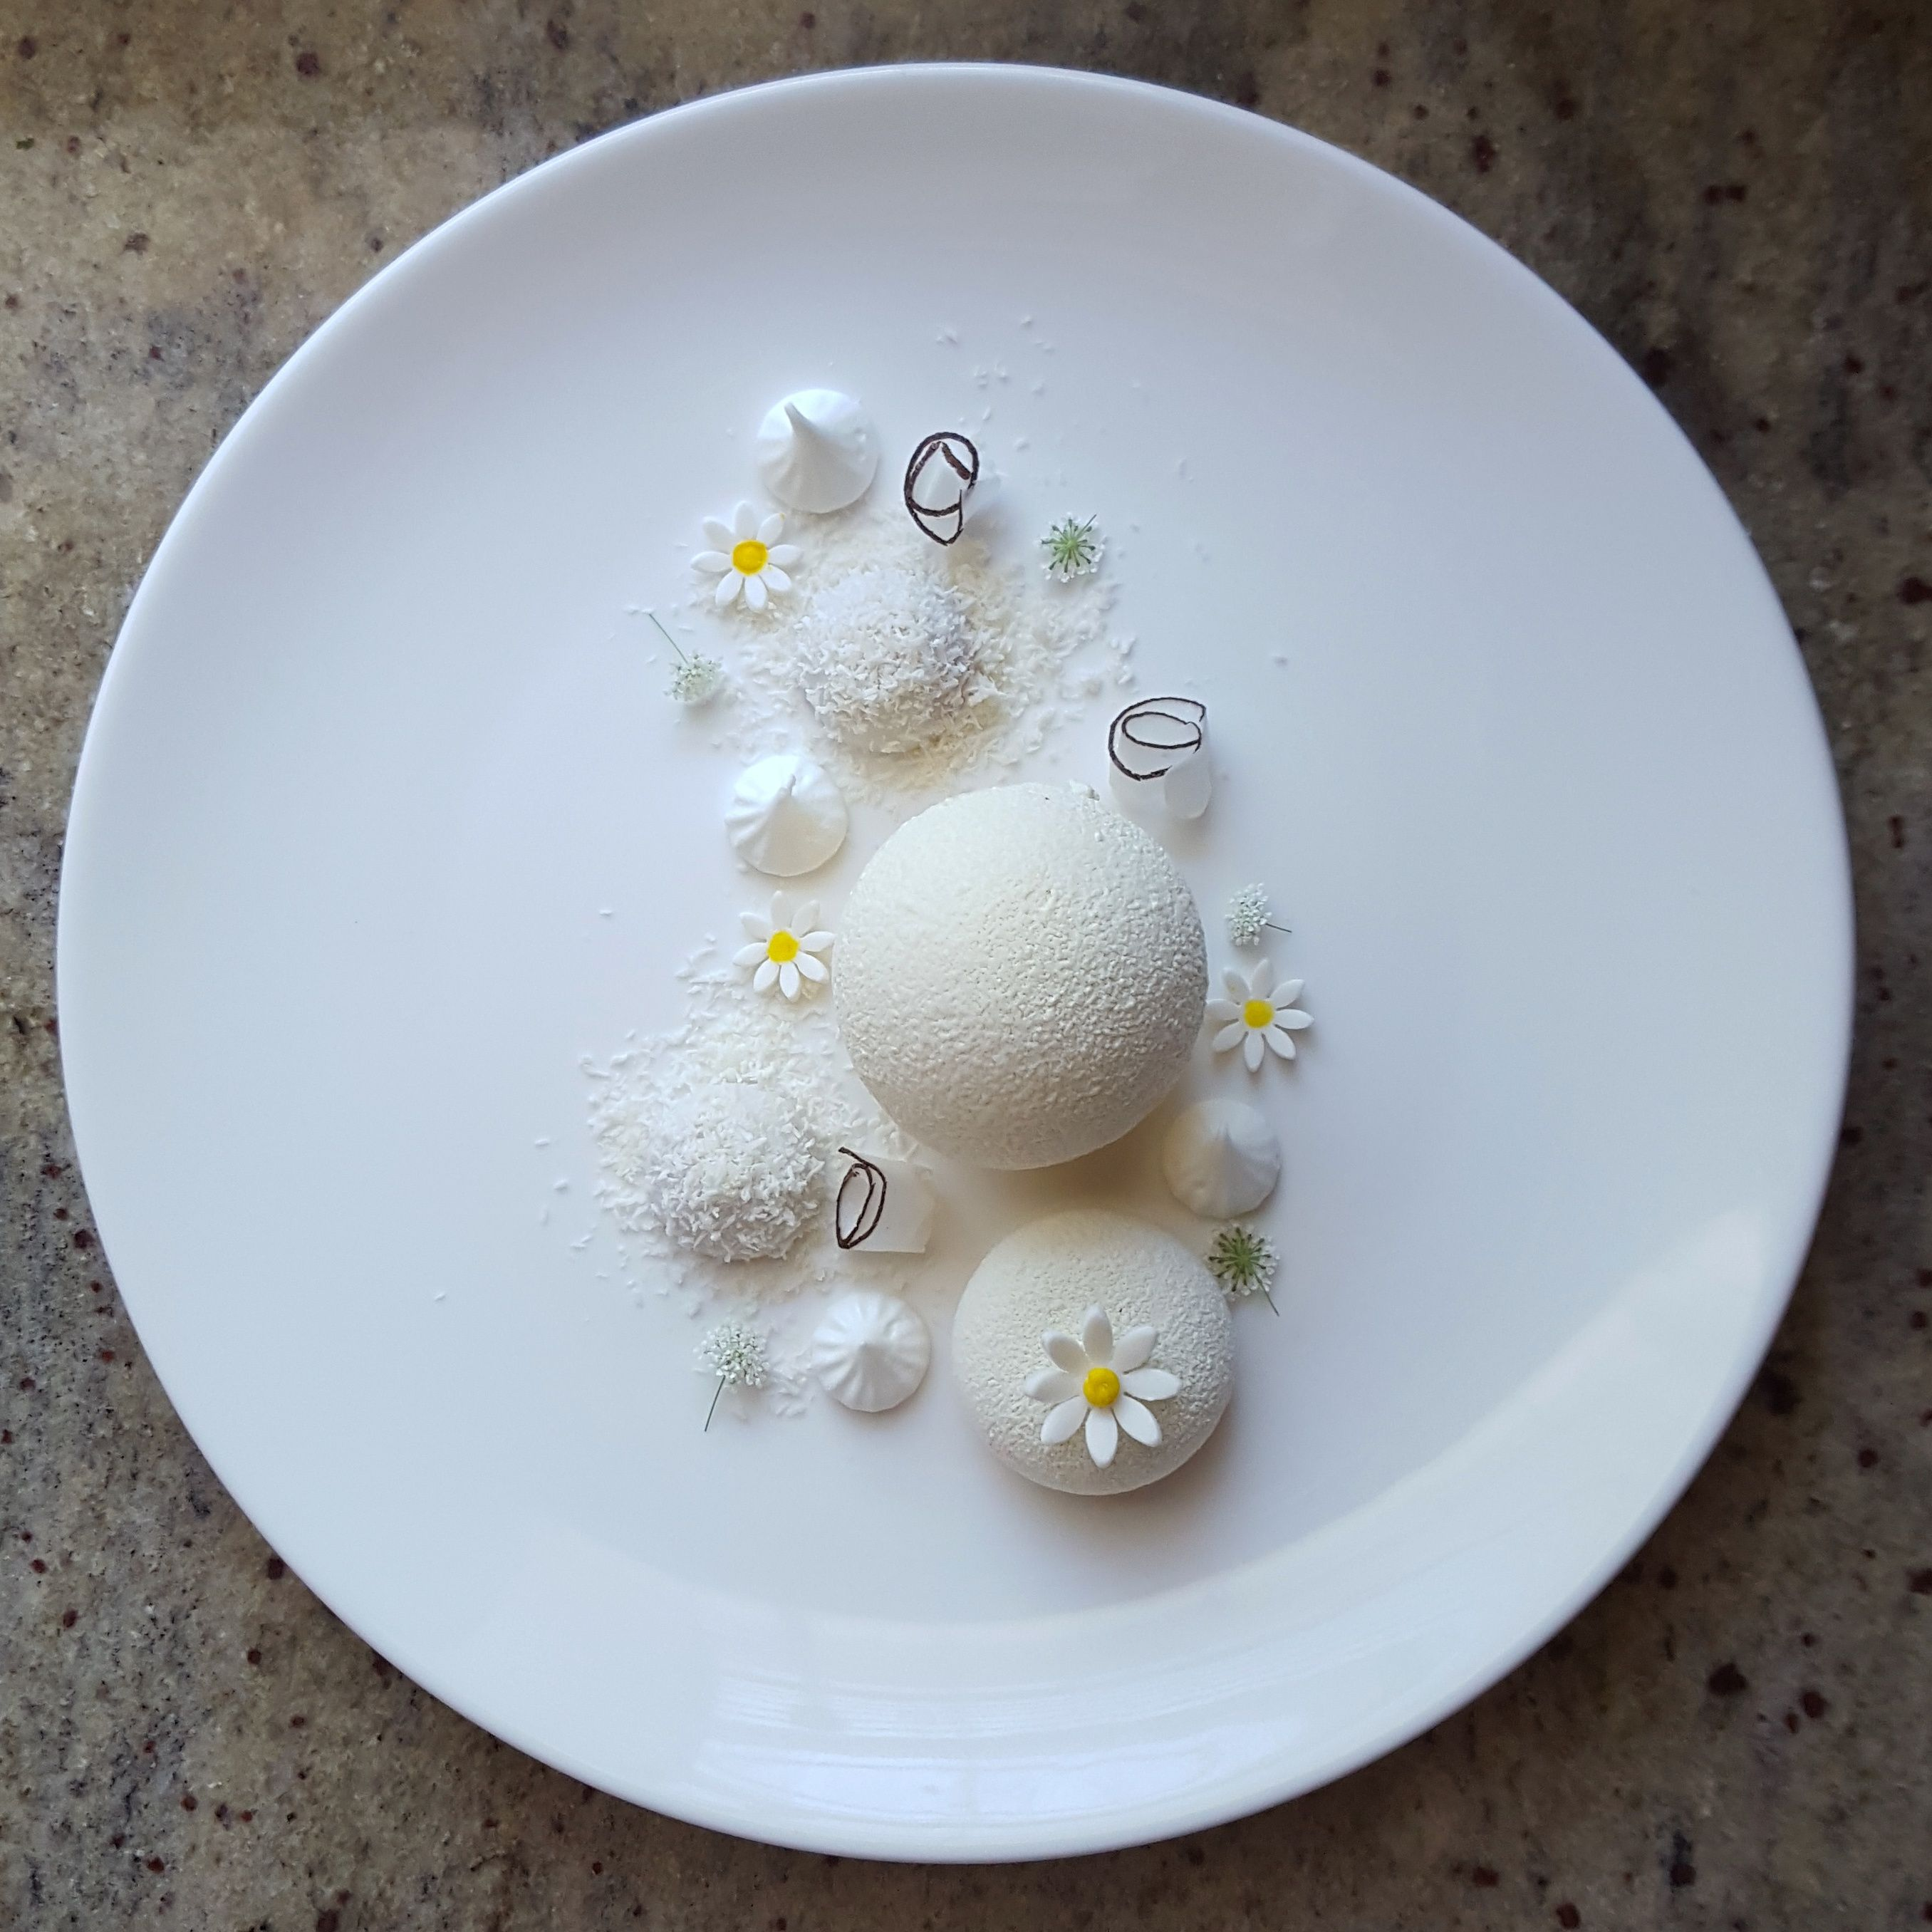 Chocolate Mousse, Coconut Mousse, Yuzu Jelly, Lychee Jelly, Coconut ...